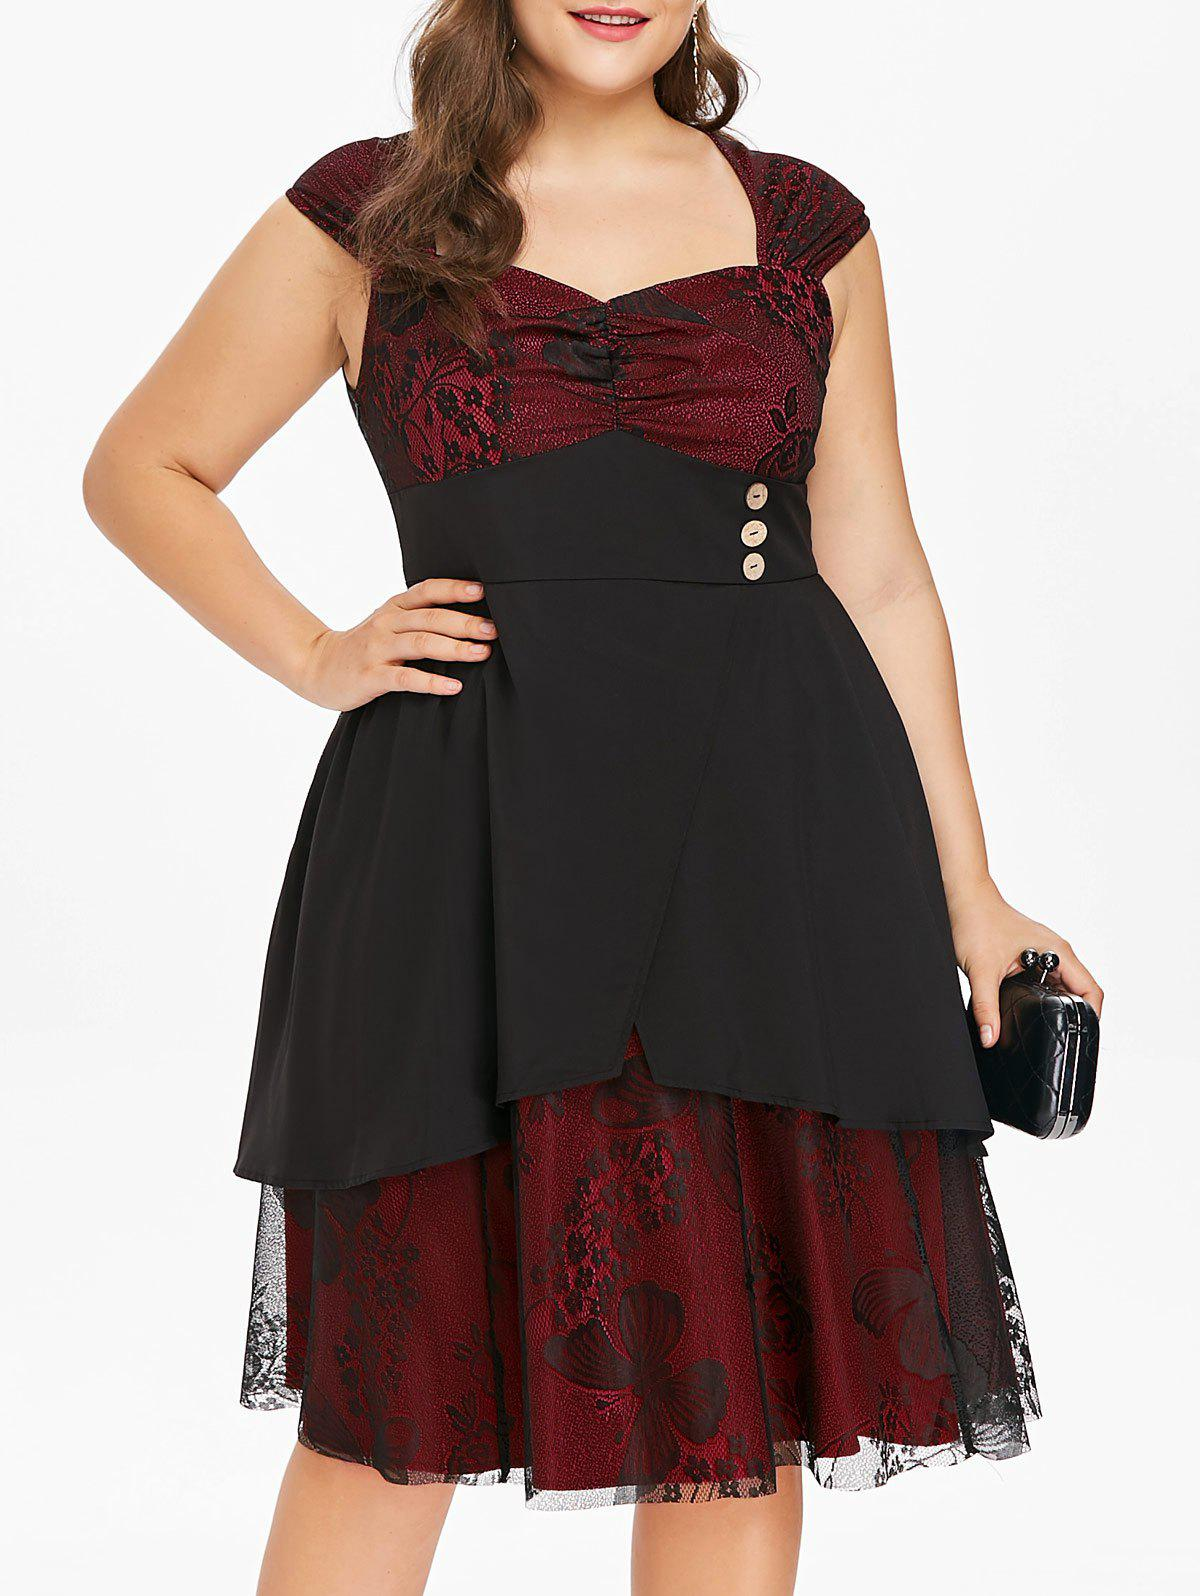 Plus Size Sweetheart Neck A Line Dress - RED WINE 4X